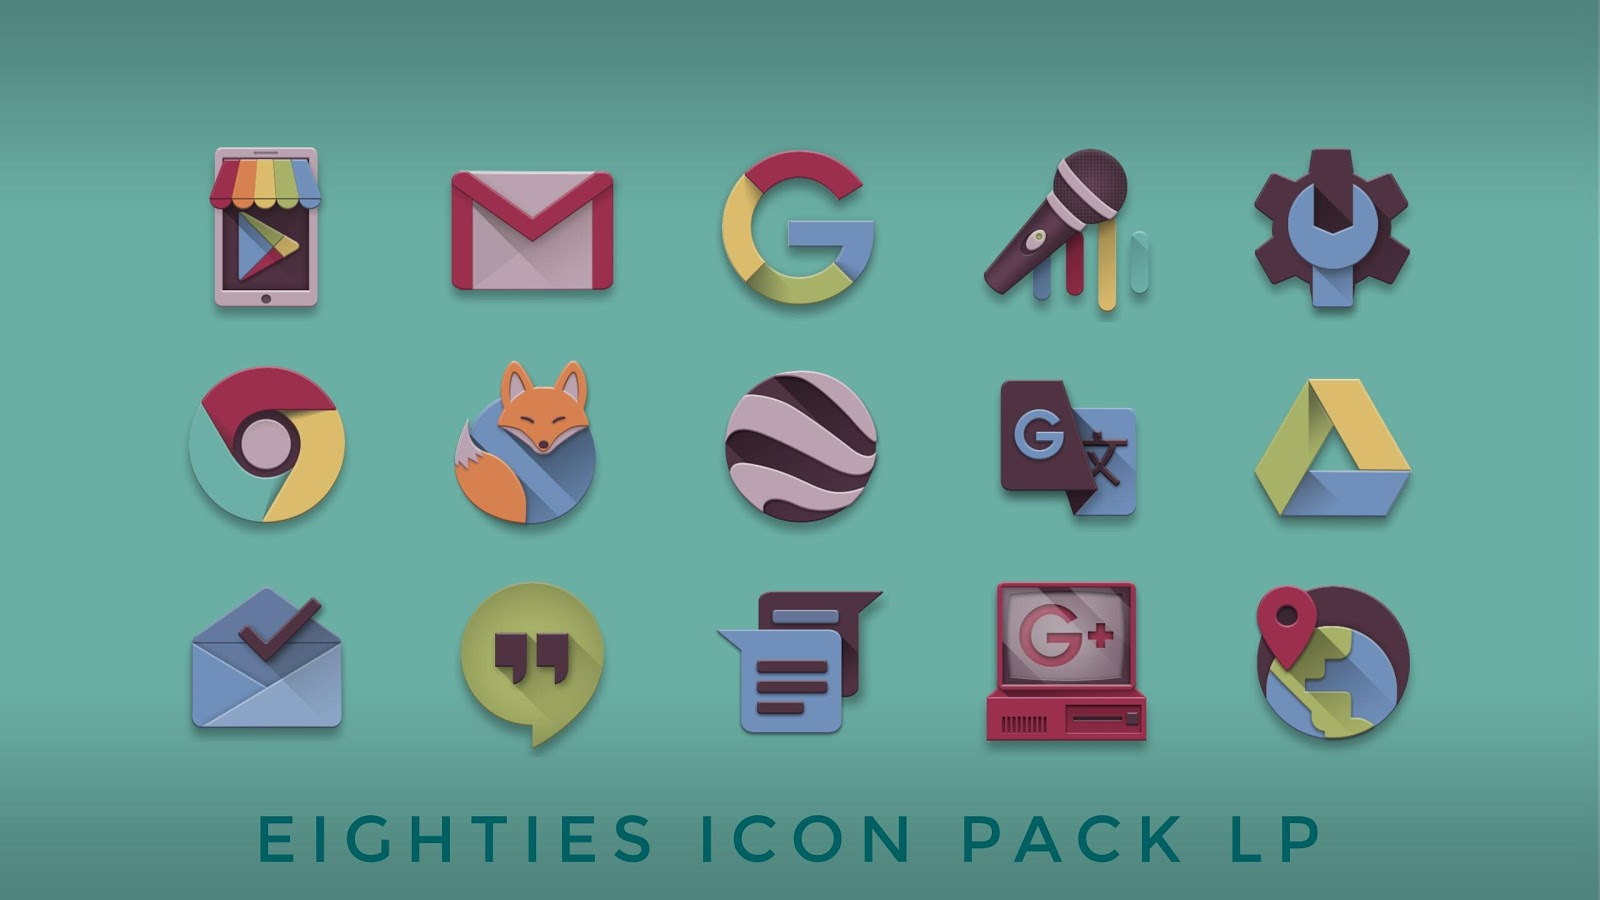 Eighties retro fun icon pack Screenshot 2